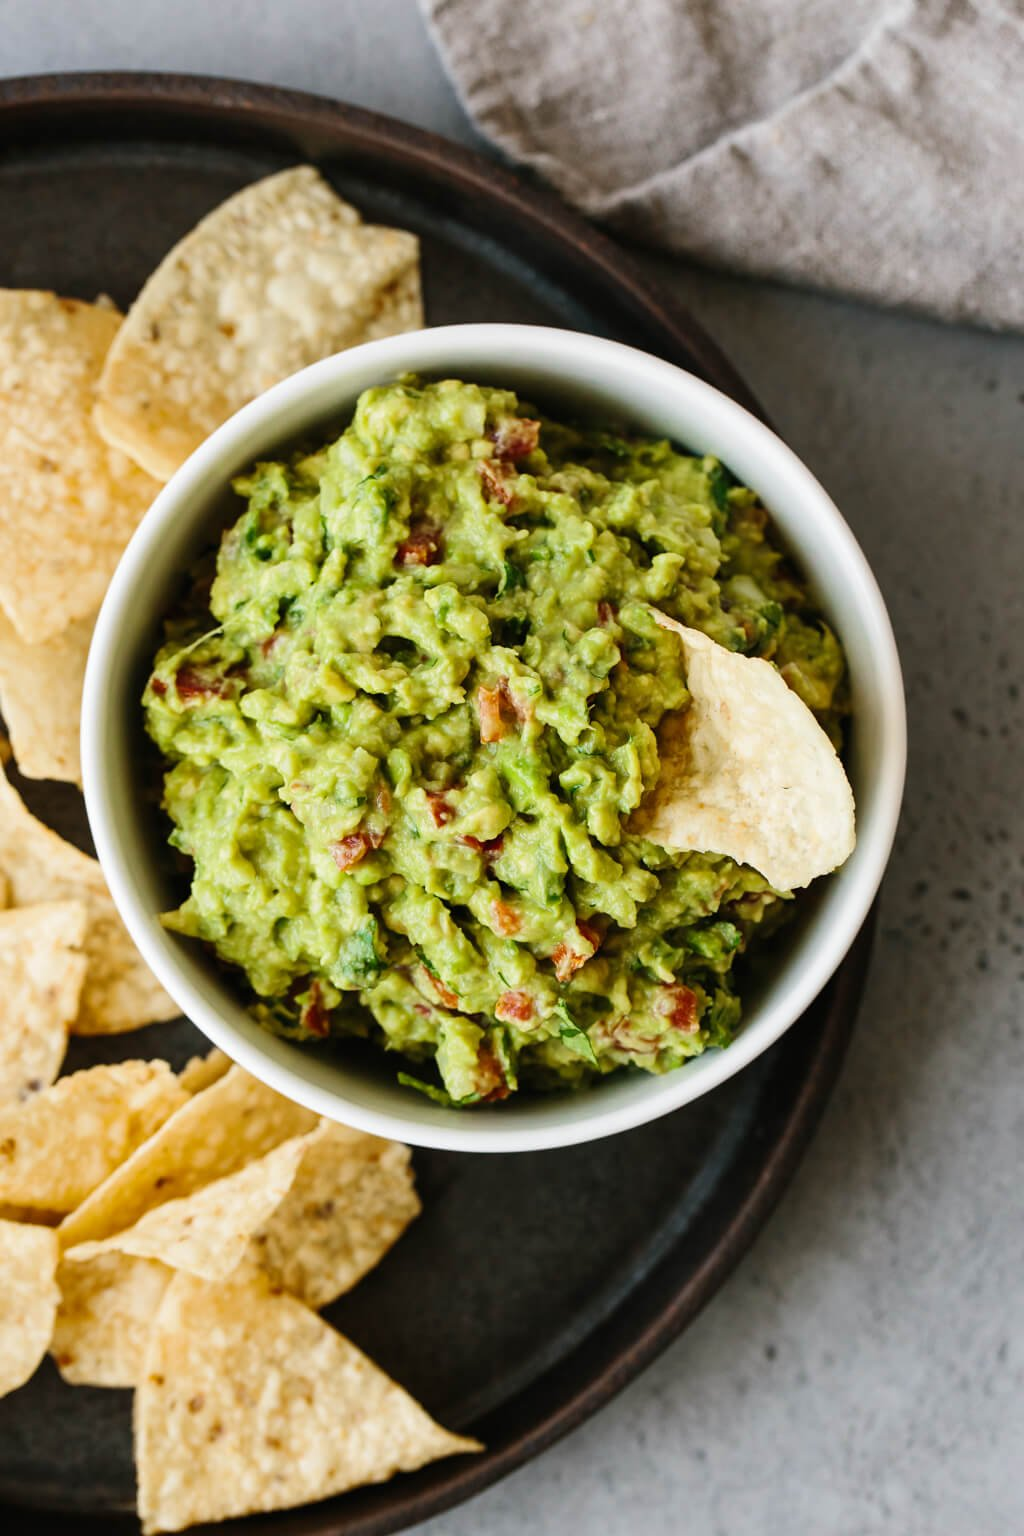 Guacamole in a bowl surrounded by chips. One chip in the guacamole.